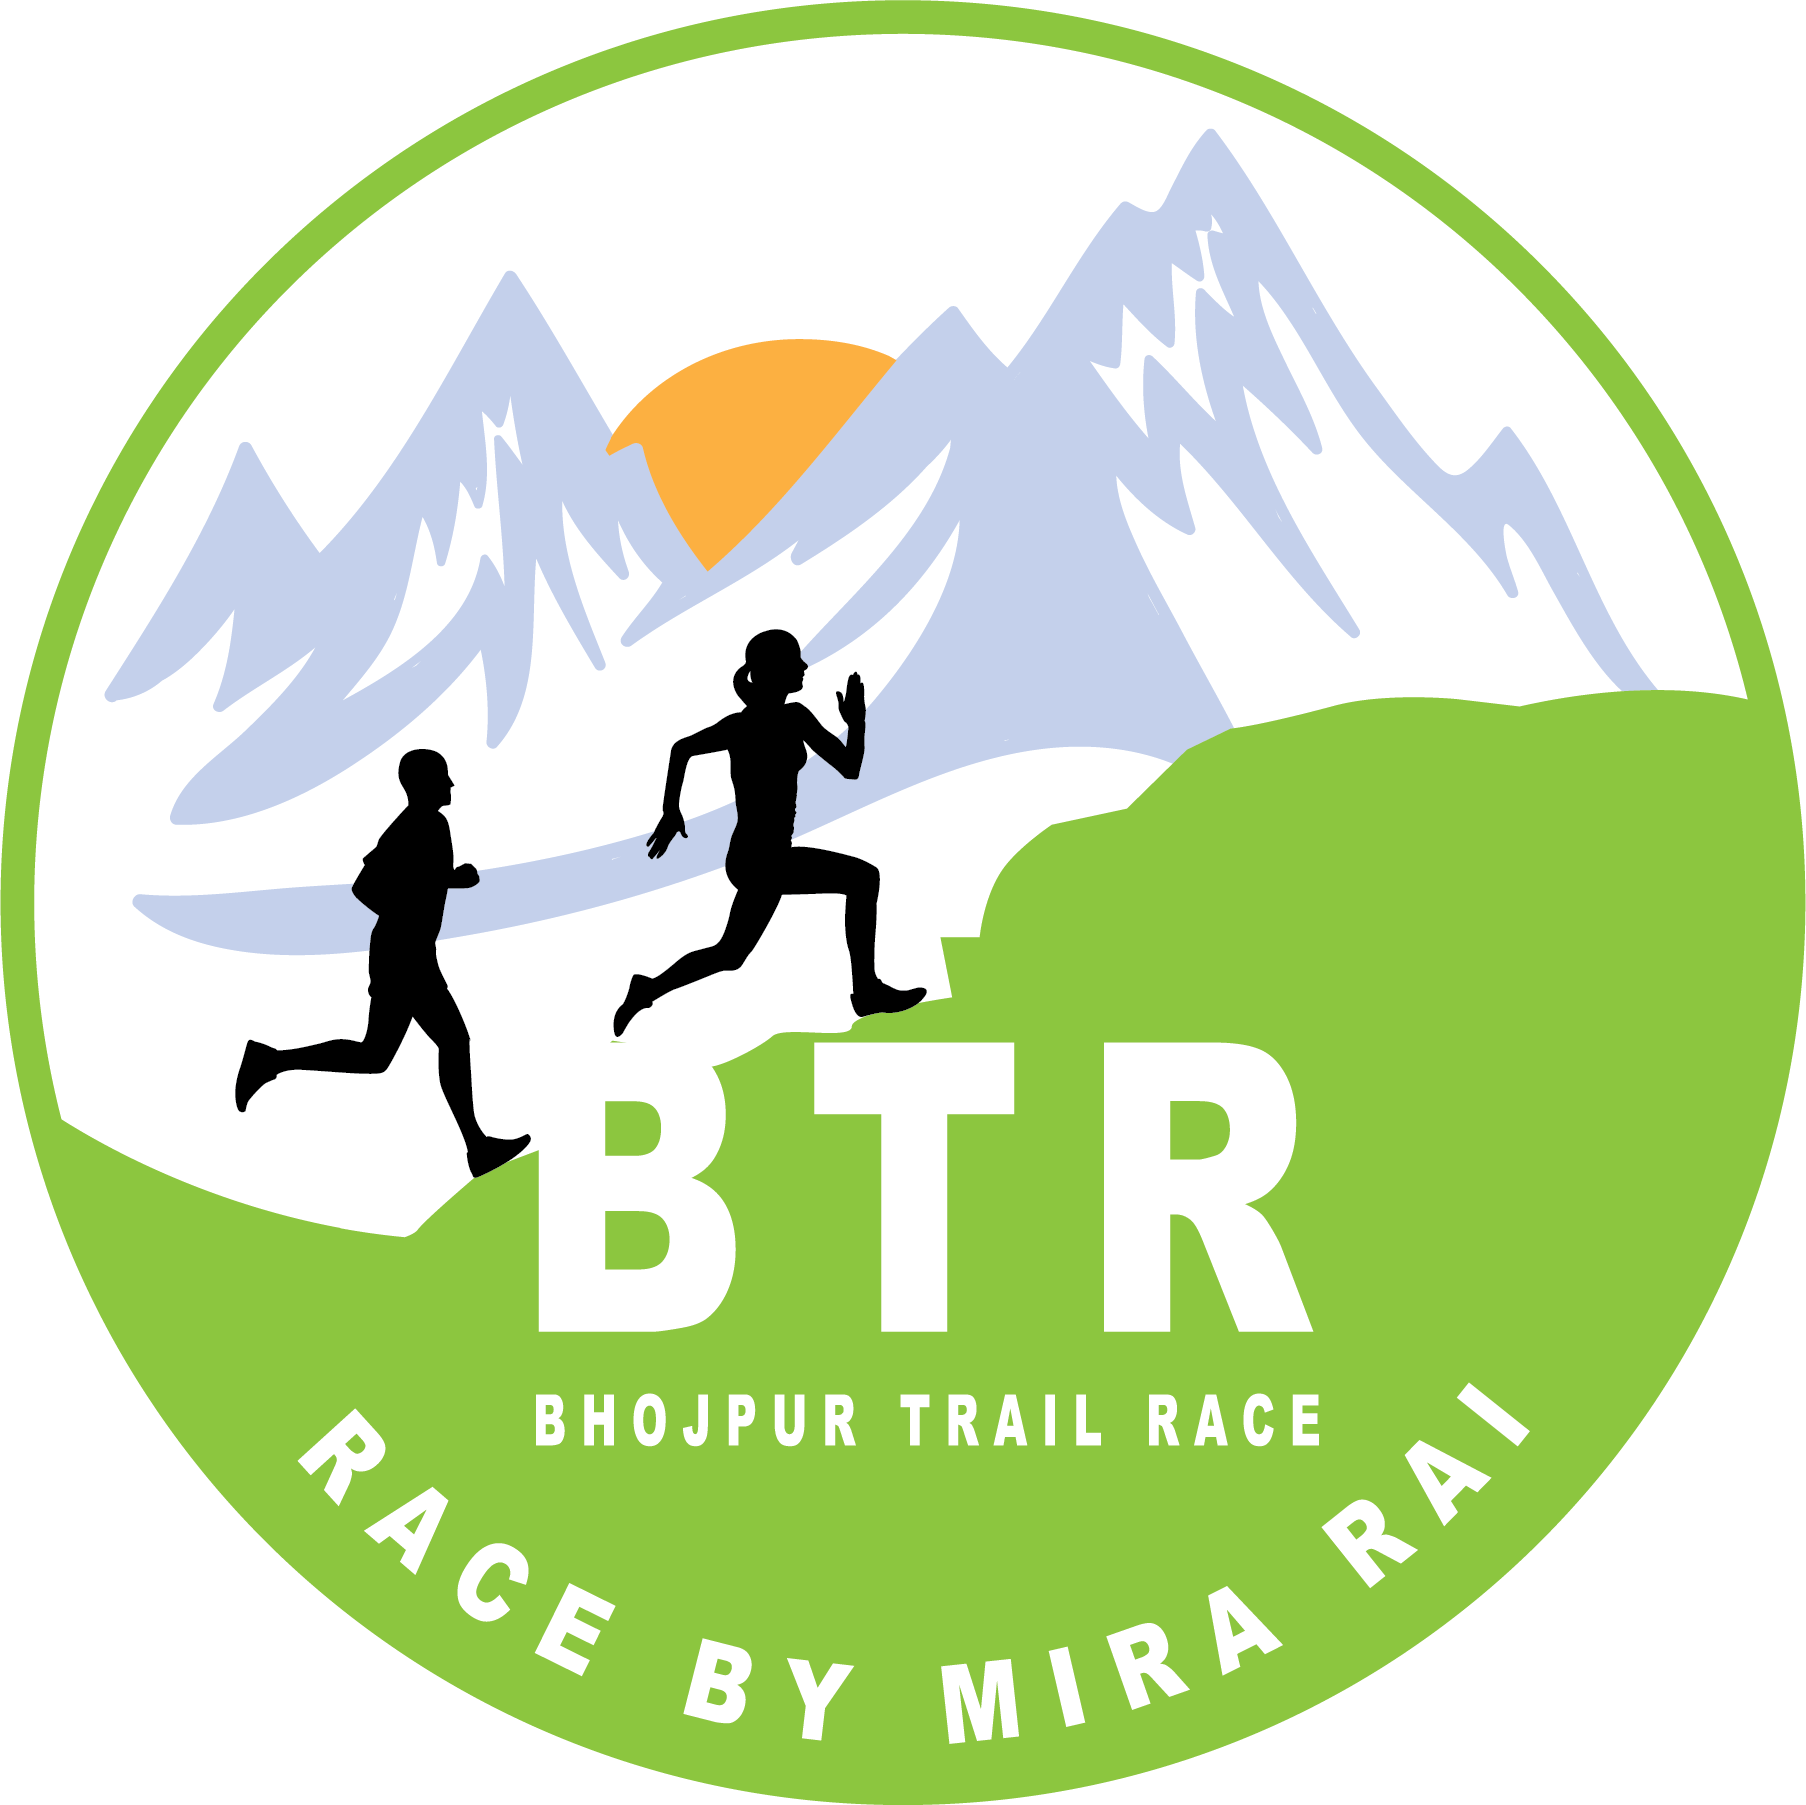 Bhojpur Trail Race